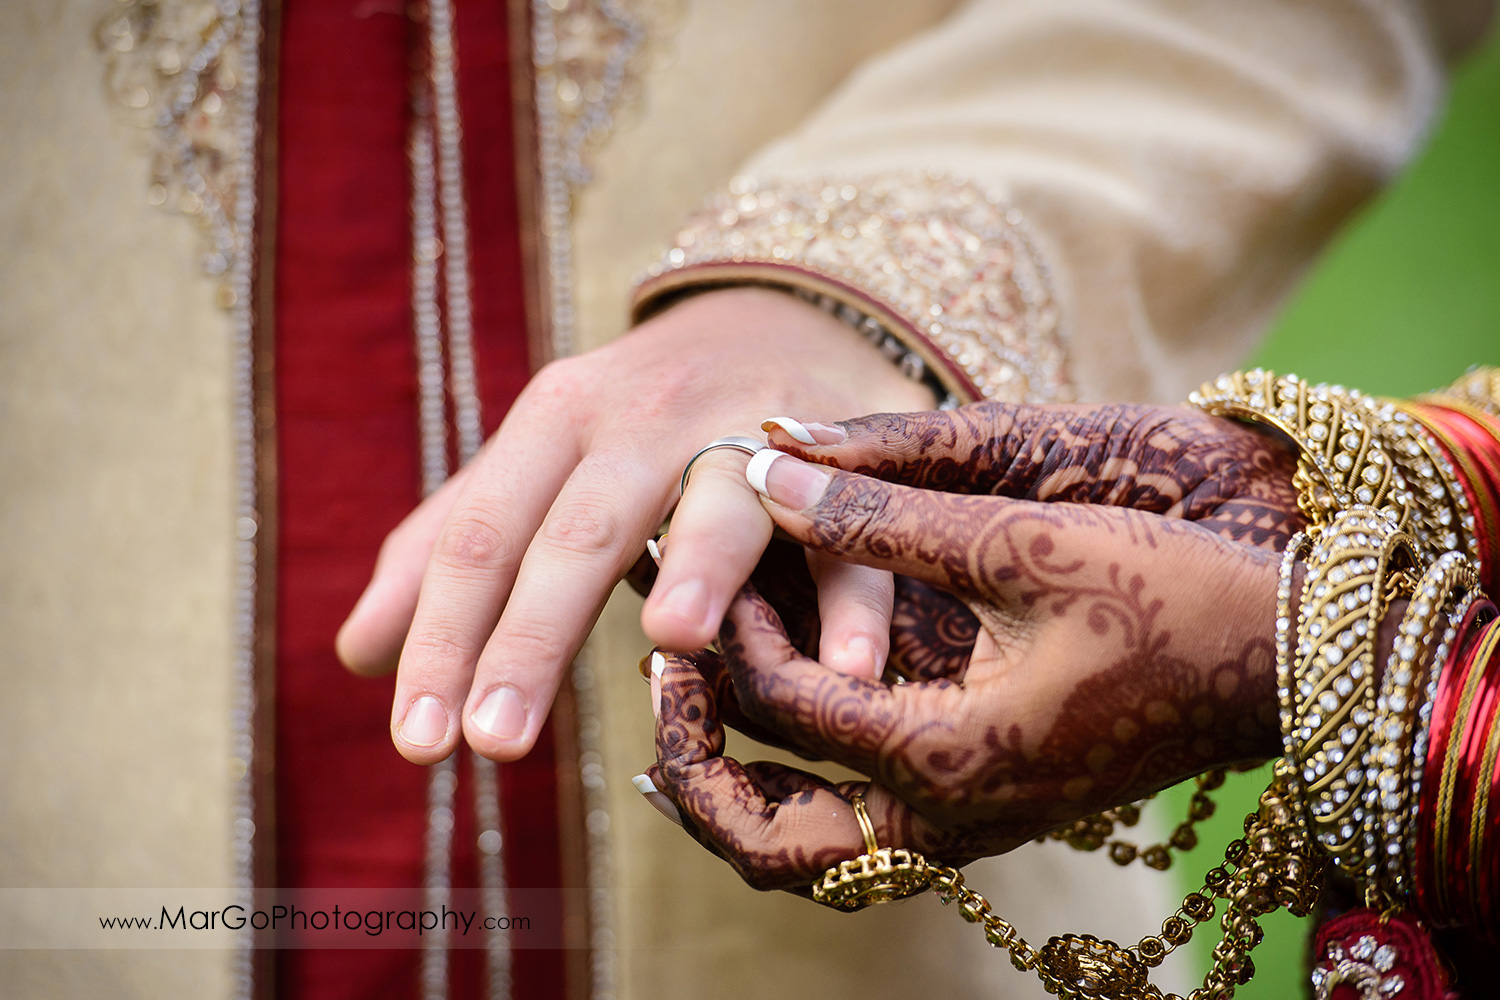 wedding rings exchange, indian wedding at Brazilian Room - Tilden Regional Park, Berkeley